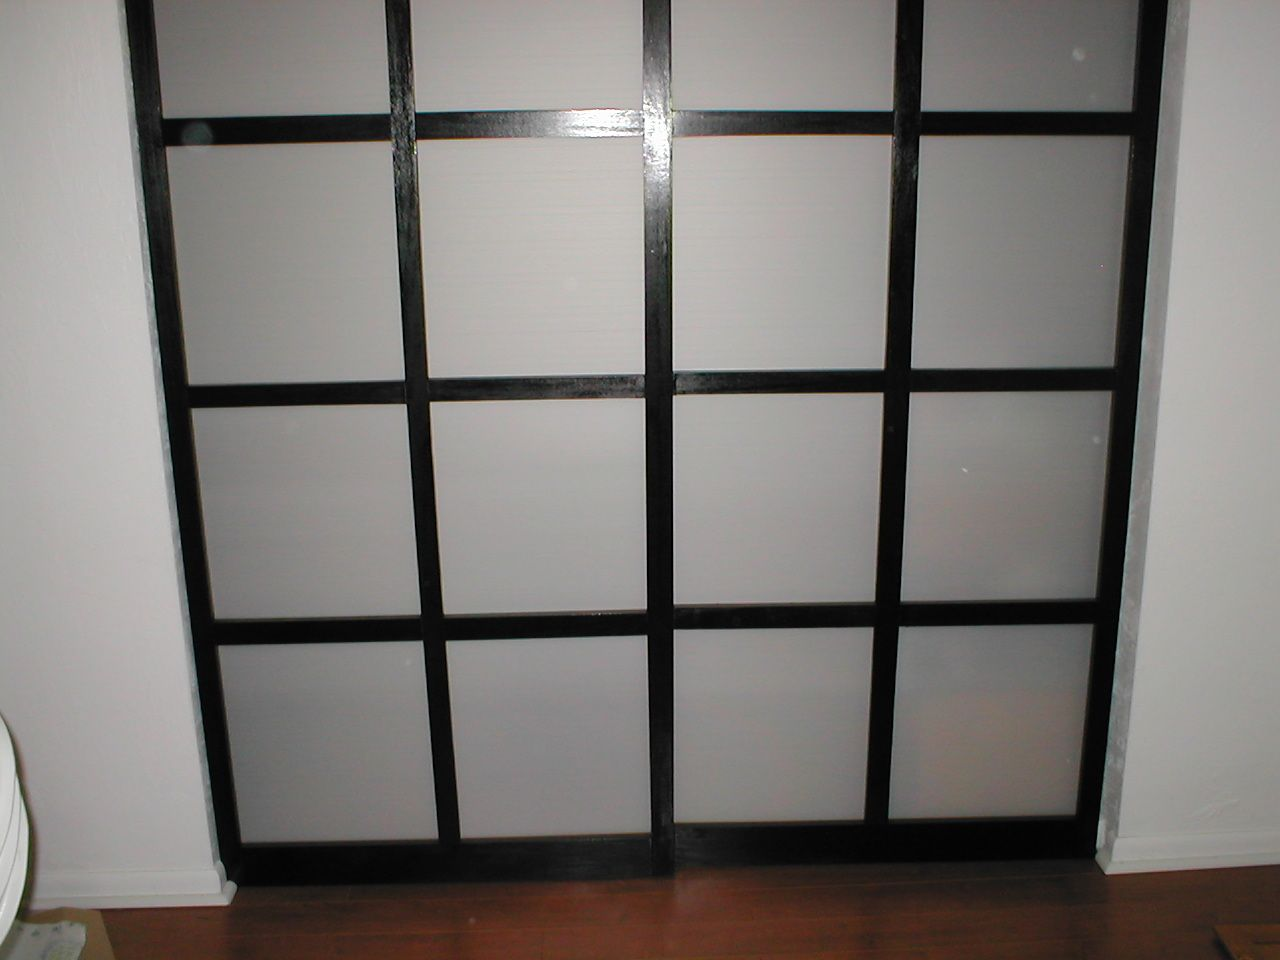 My House Had The Generic Metal Bi Fold Closet Doors Which Look Very Cheap.